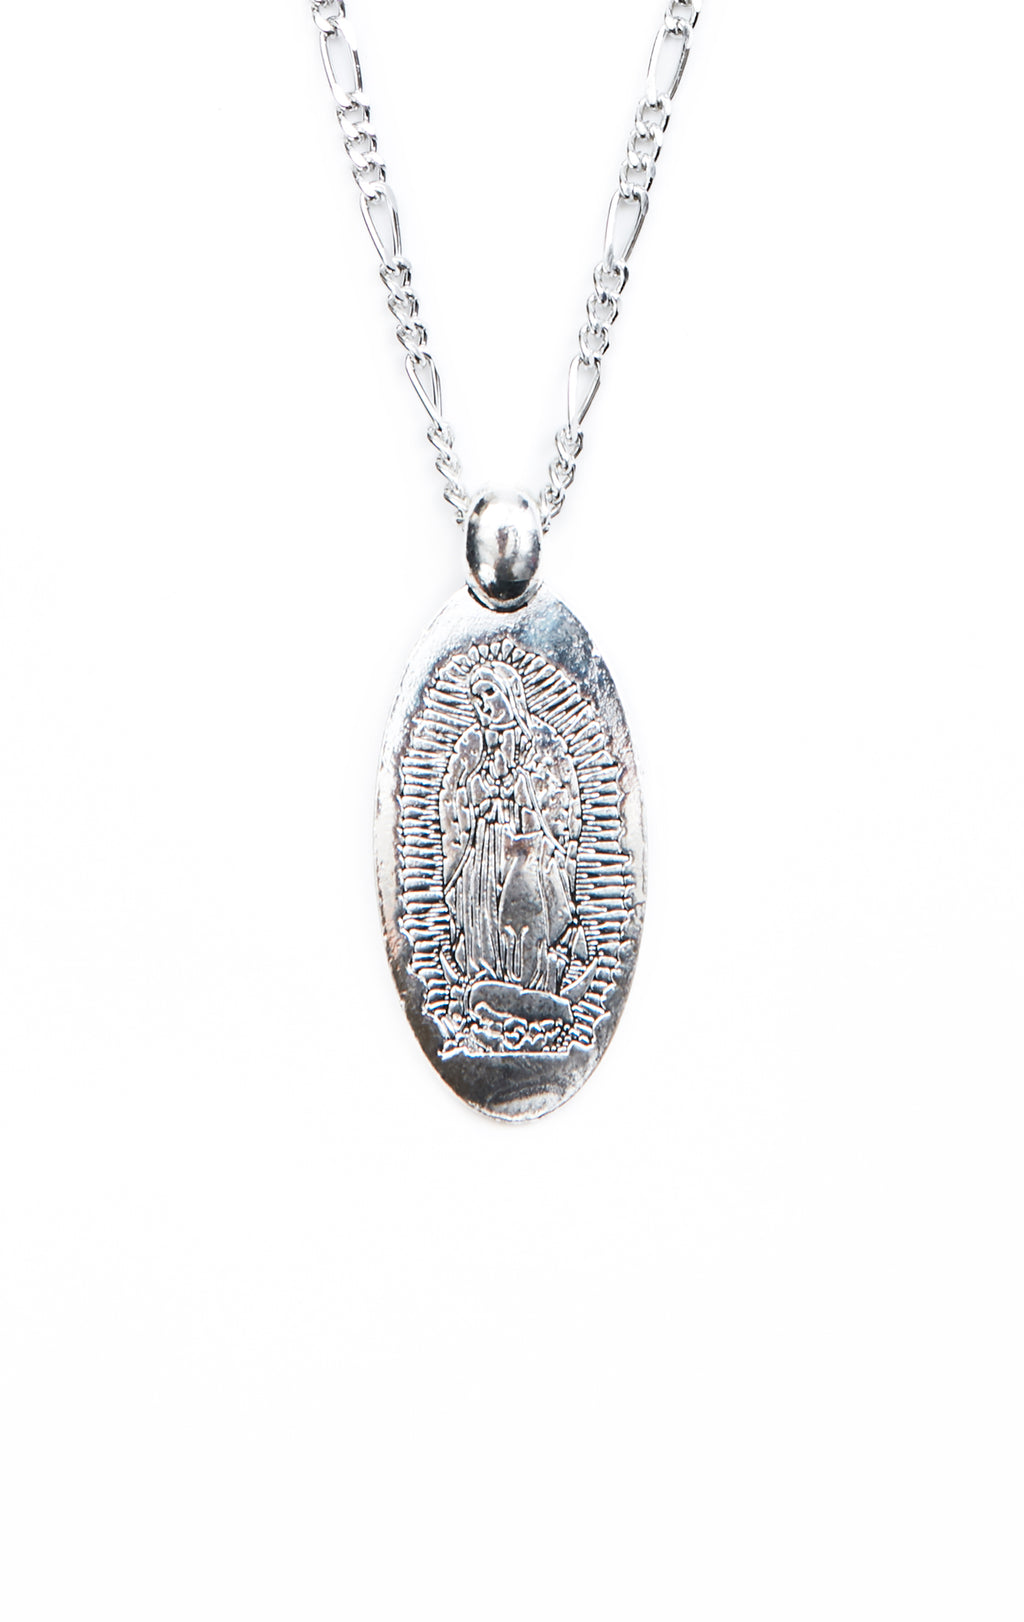 SHRAKE LADY GUADALUPE NECKLACE - ZOOM